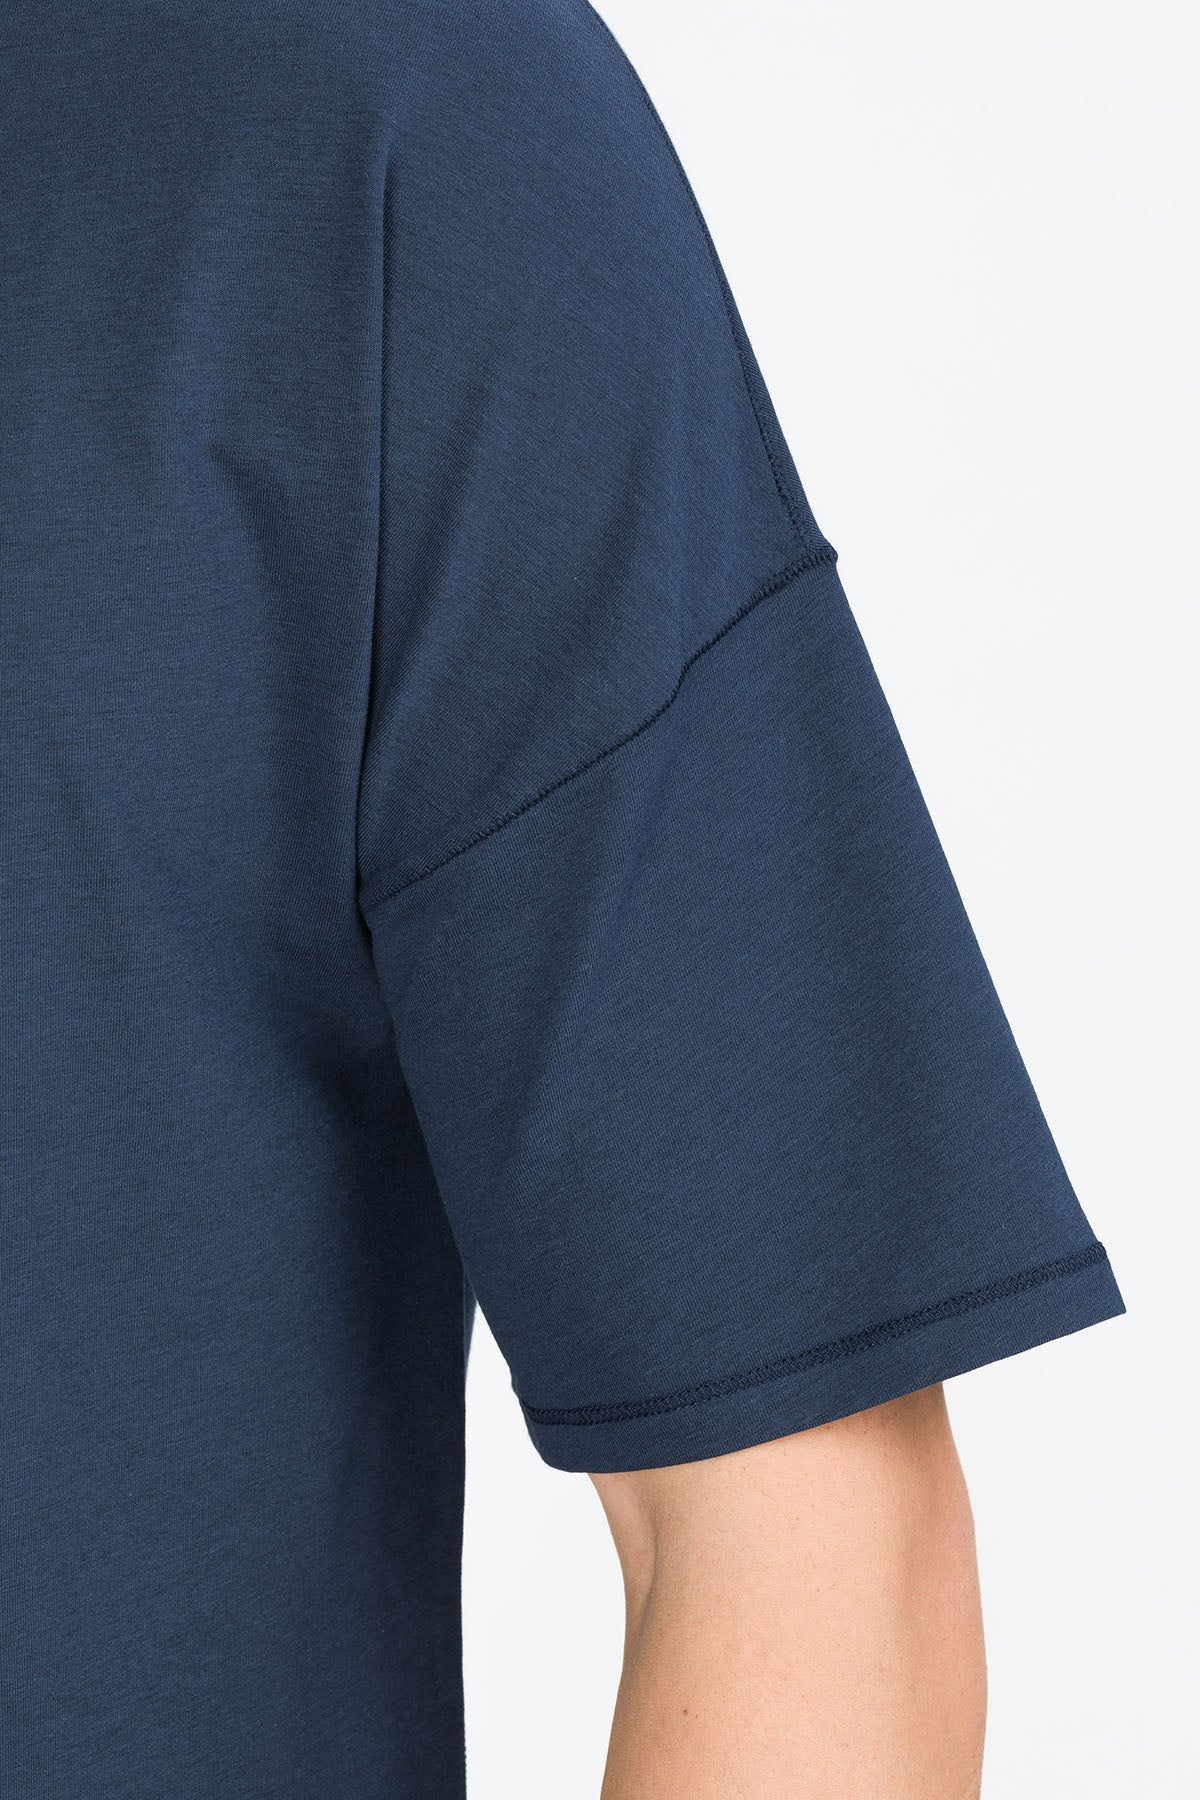 RECHARGER T-Shirt in SeaCell navy Passform relaxed detail Ansicht